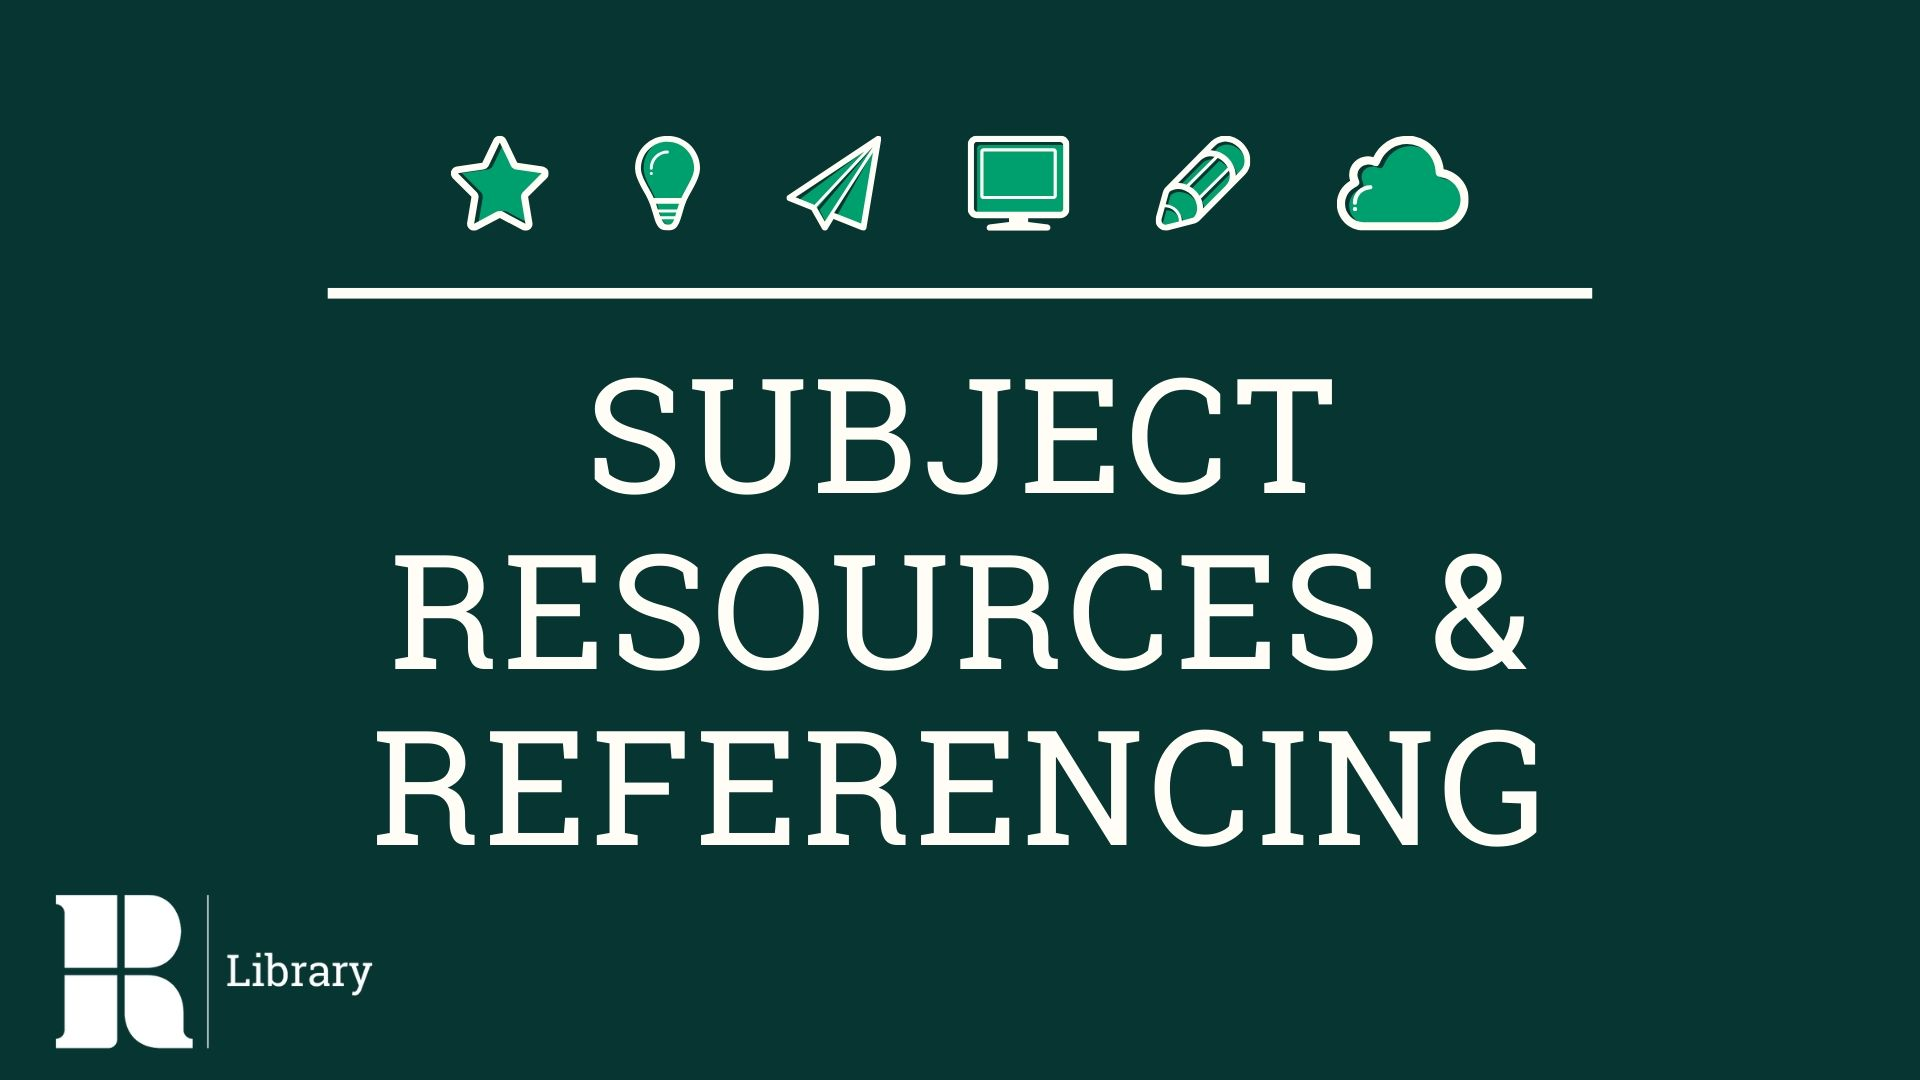 Subject Resources & Referencing Guides